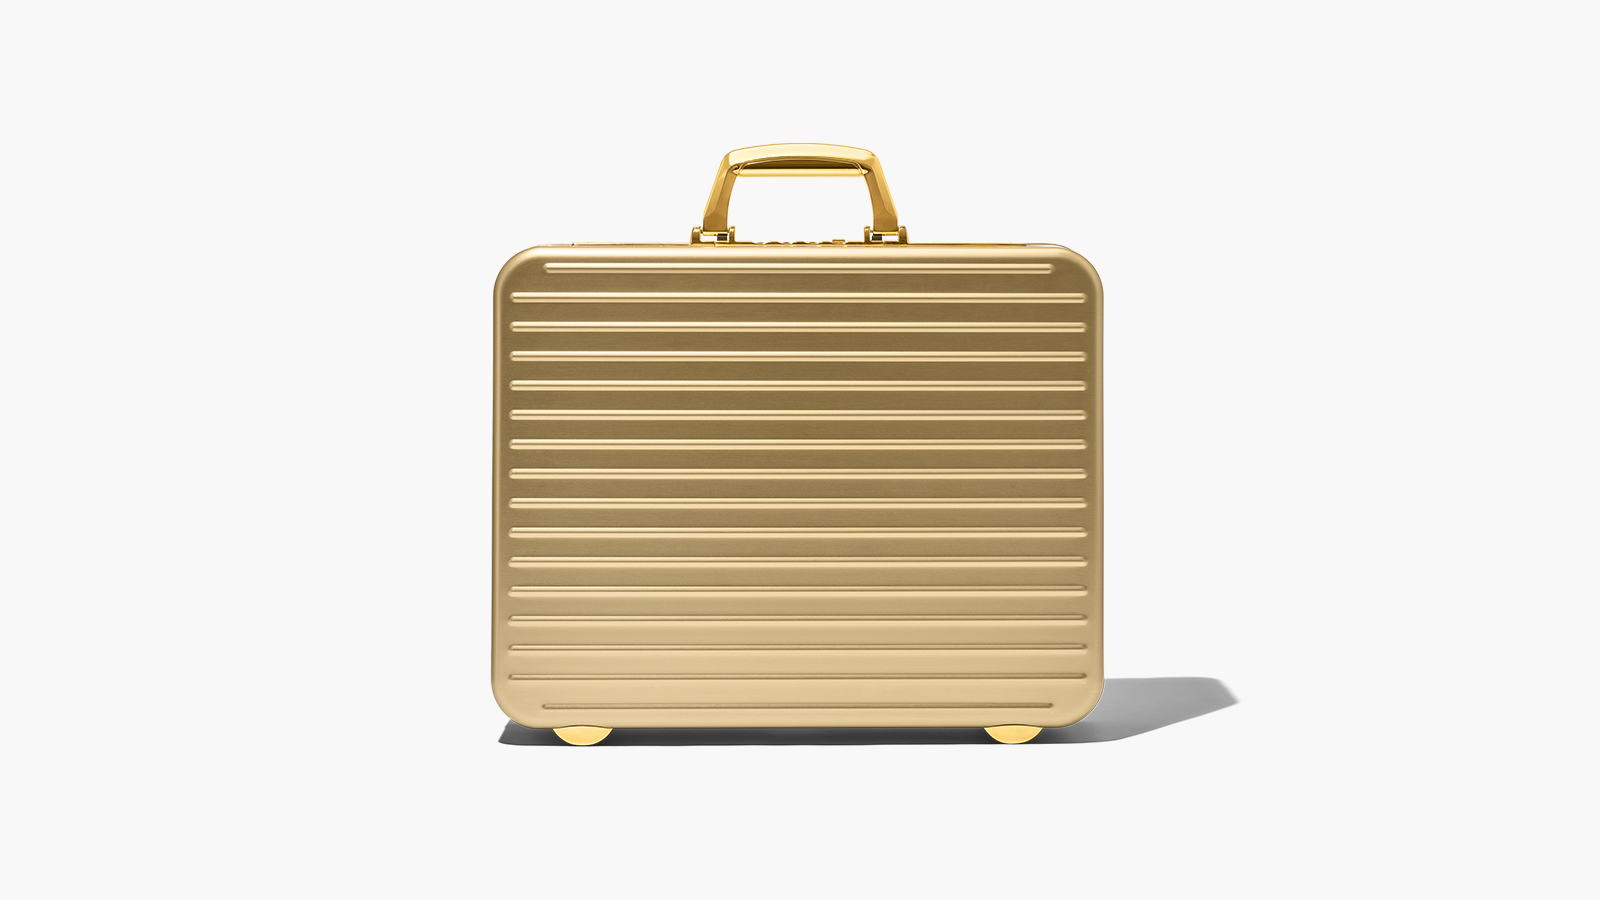 RIMOWA Attaché Gold